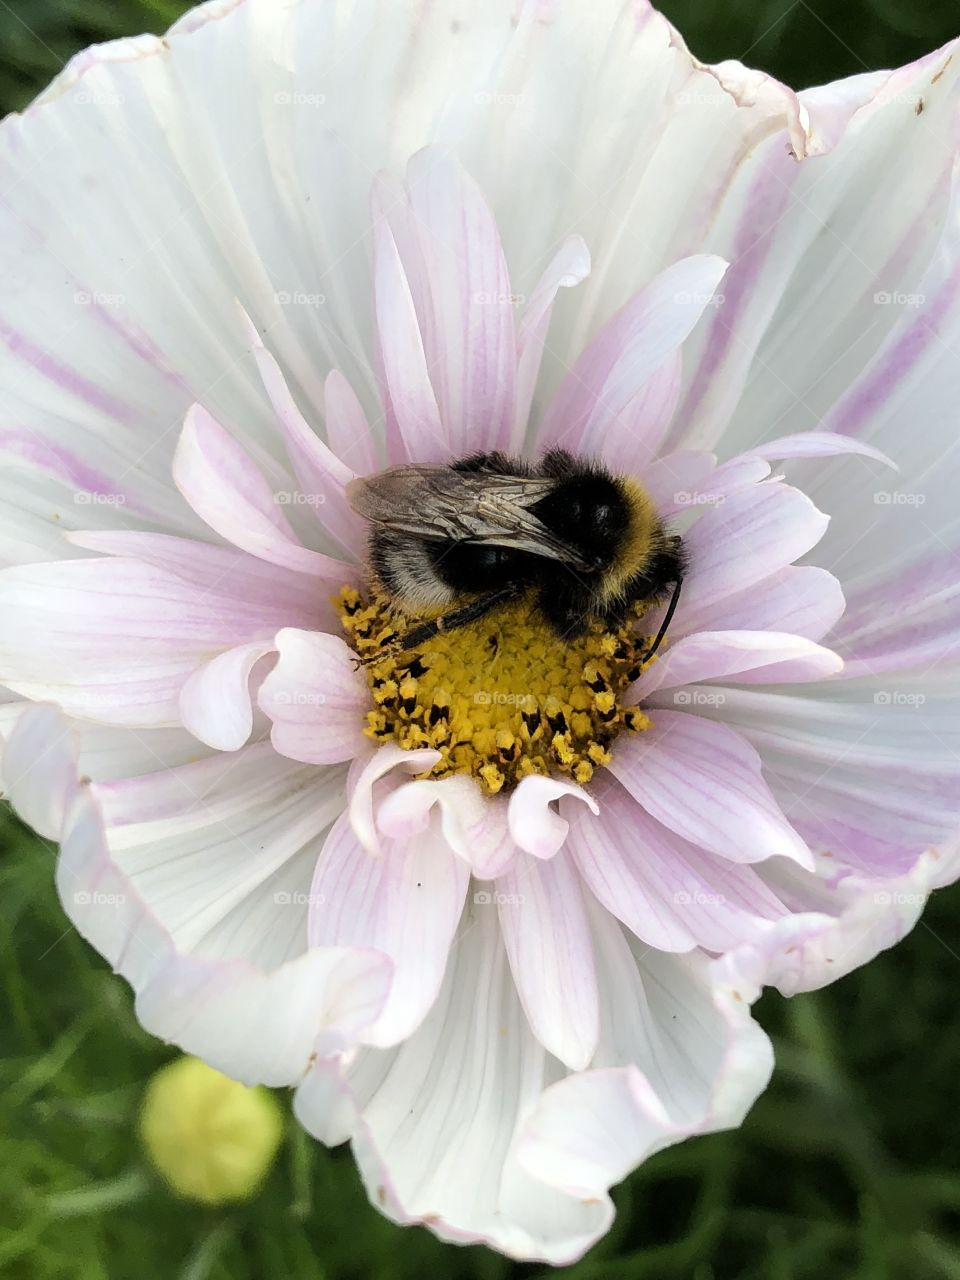 Bumblebee on a Cosmo flower